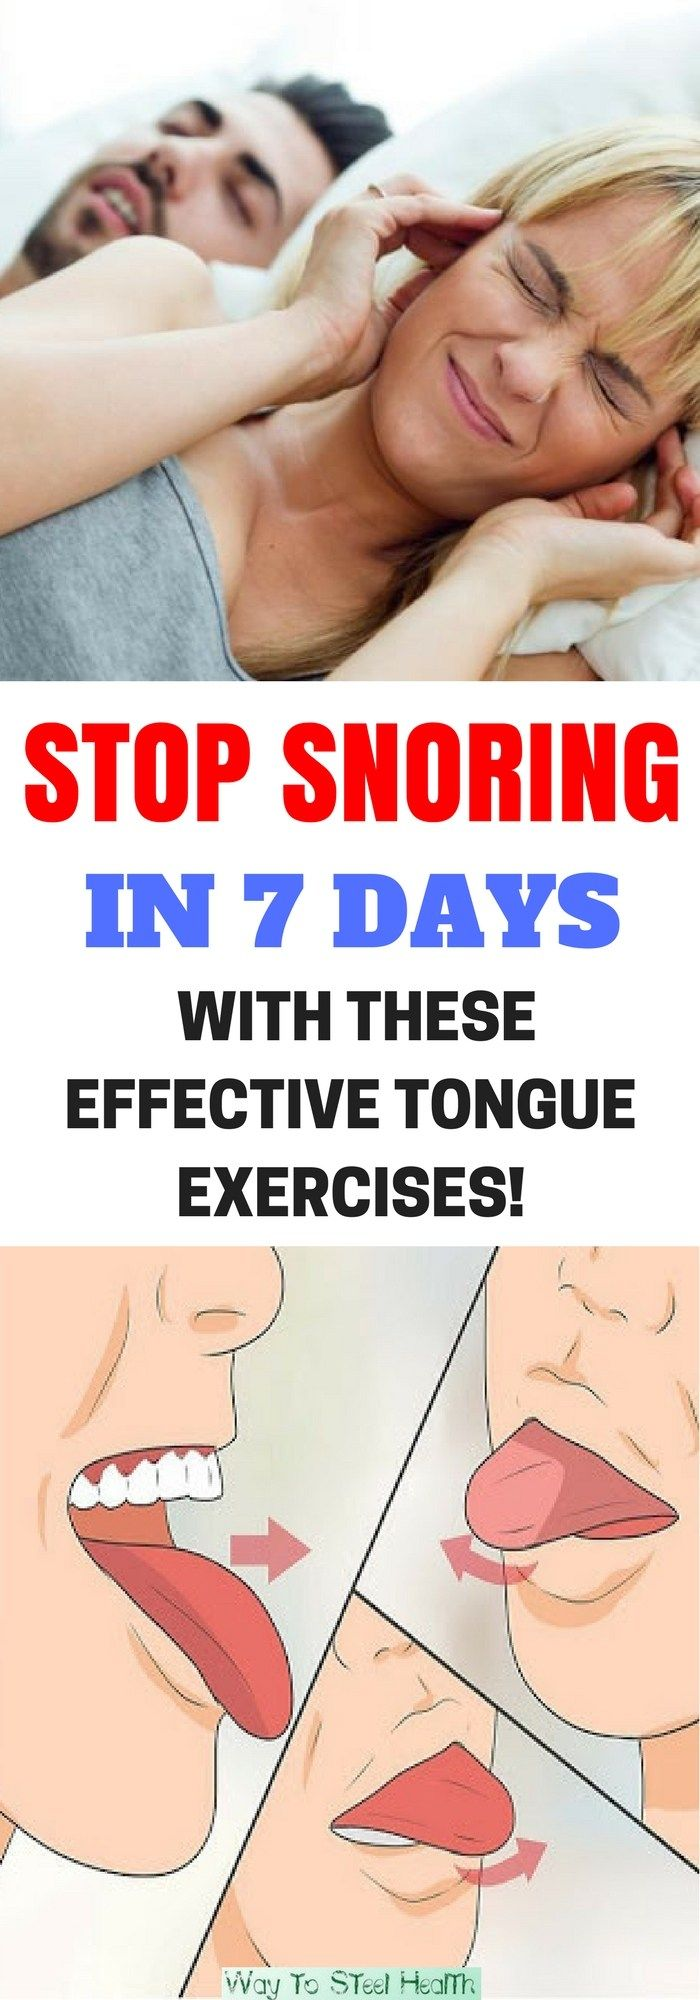 If your partner is willing to wear earplugs while you two sleep because you snore too loudly, you're quite lucky. But for those who aren't as fortunate and their partner is constantly complaining, these exercises may offer hope.